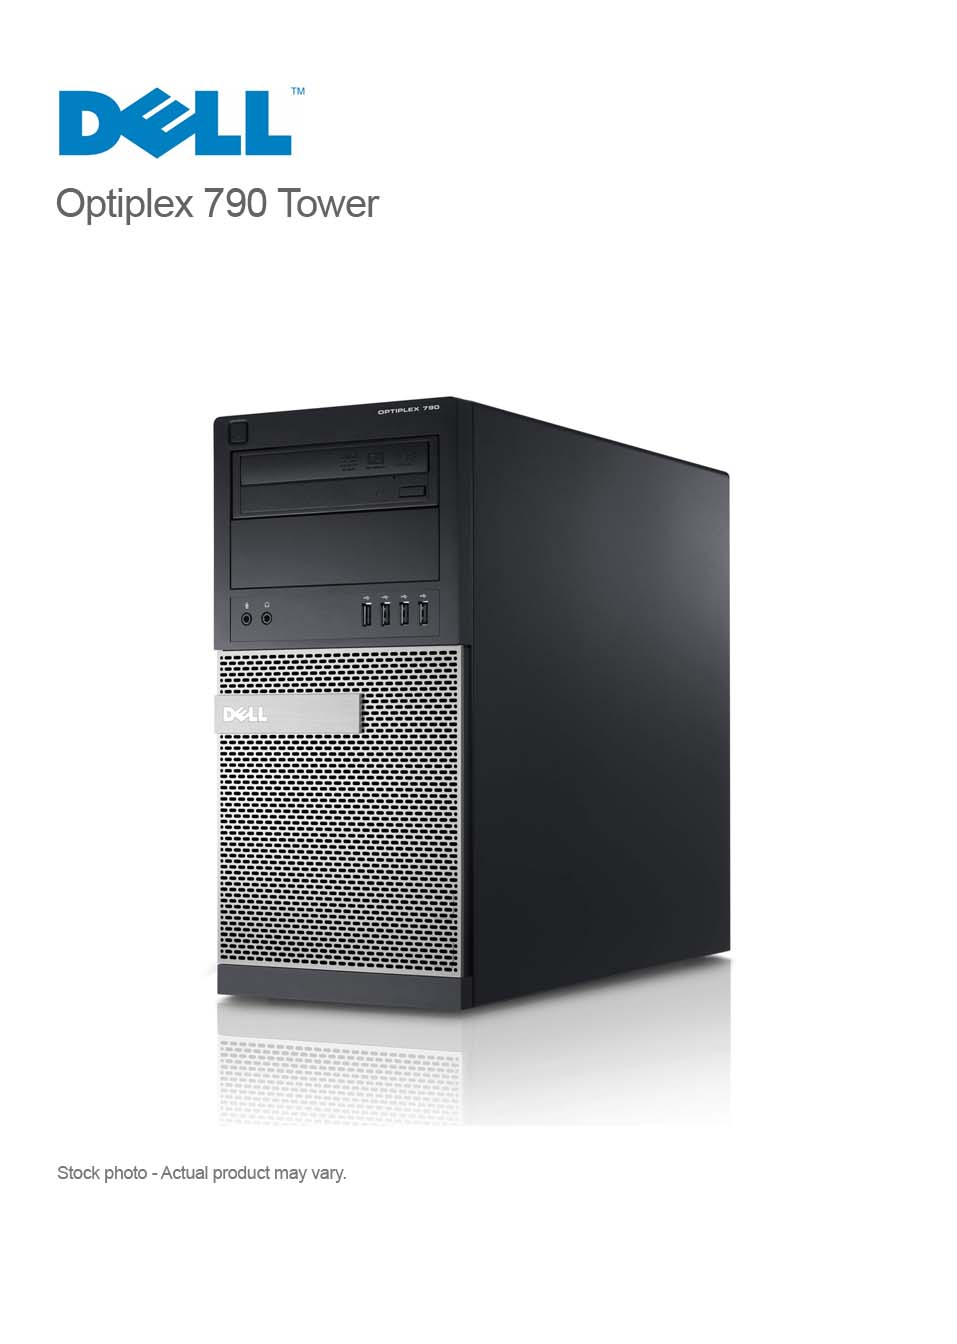 Dell Desktop  puter Optiplex in addition Product in addition Dell Optiplex 790 Corei5 2400 3 4ghz 4gb 500gb Dvdrw Win 7 in addition Winpe X86 V2 4 Iso likewise 231785927069. on optiplex 790 drivers